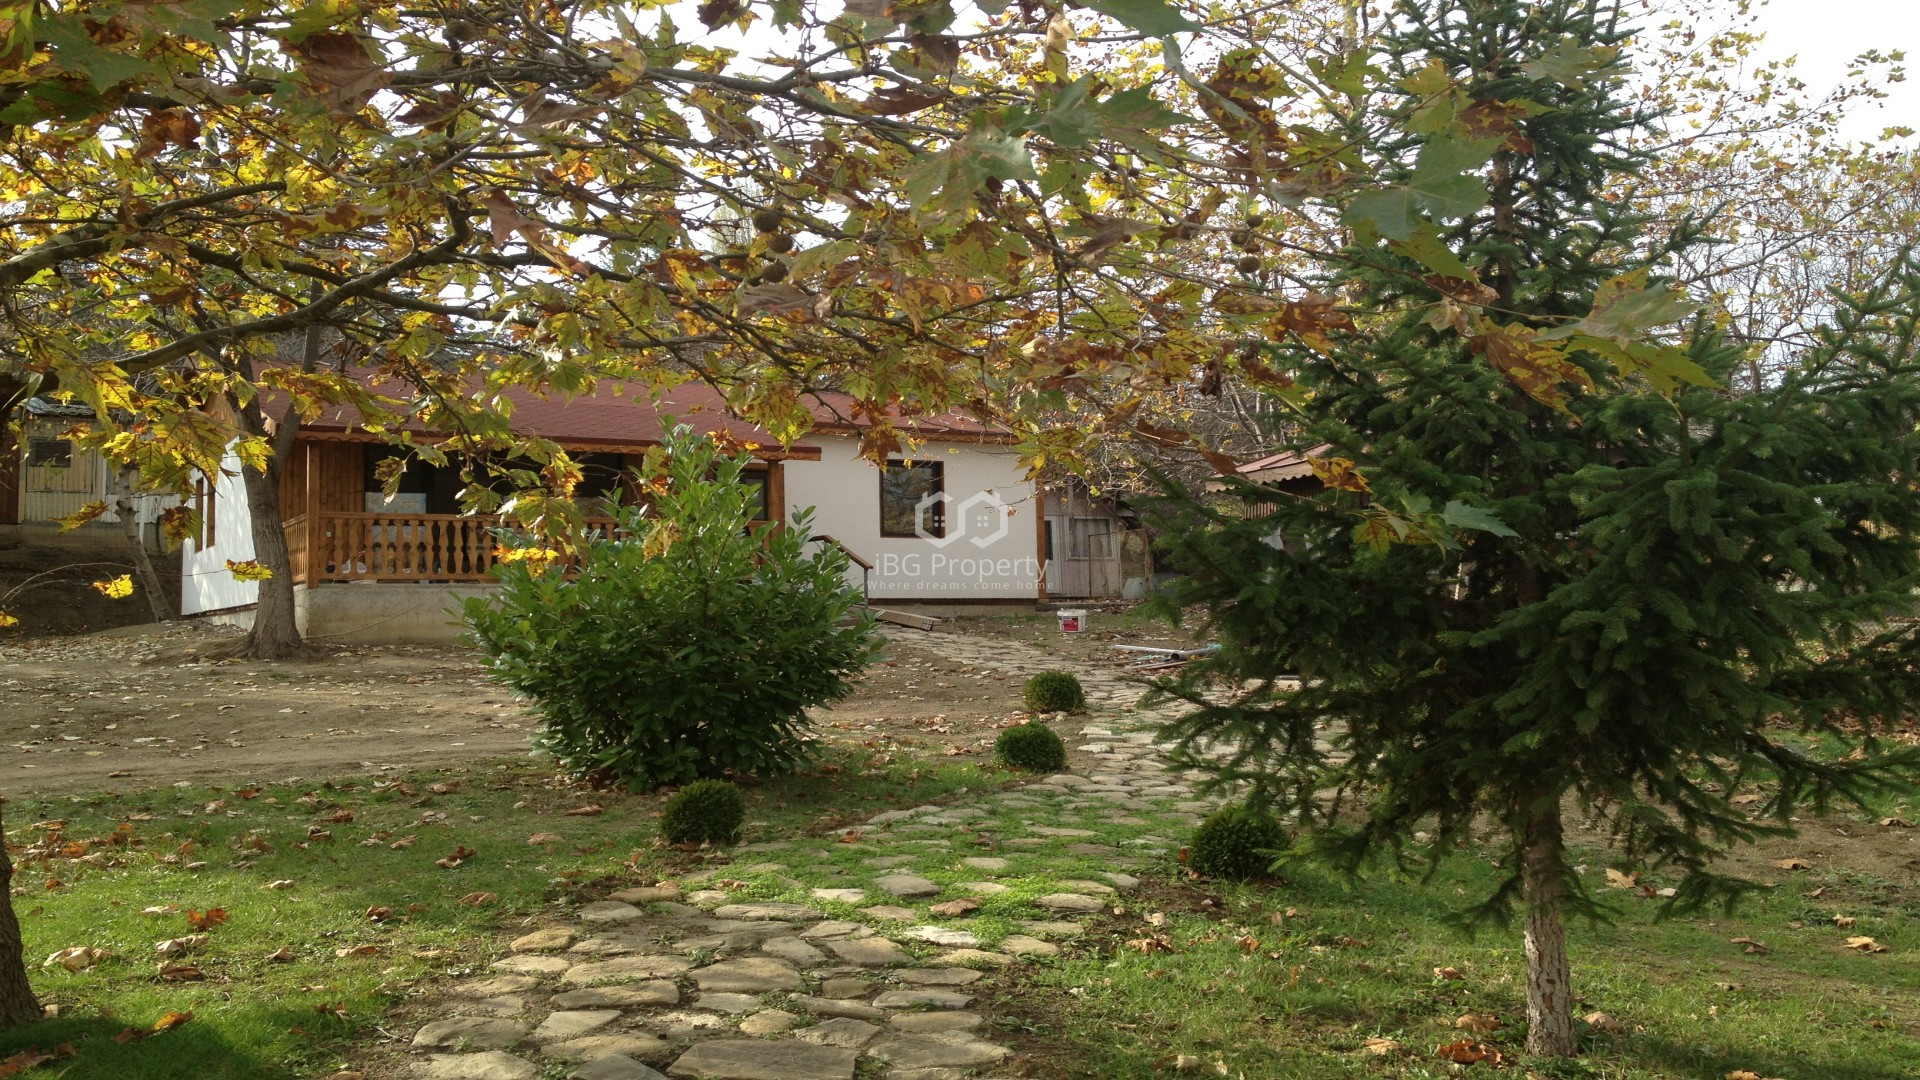 House of Byala 80 sq.m.